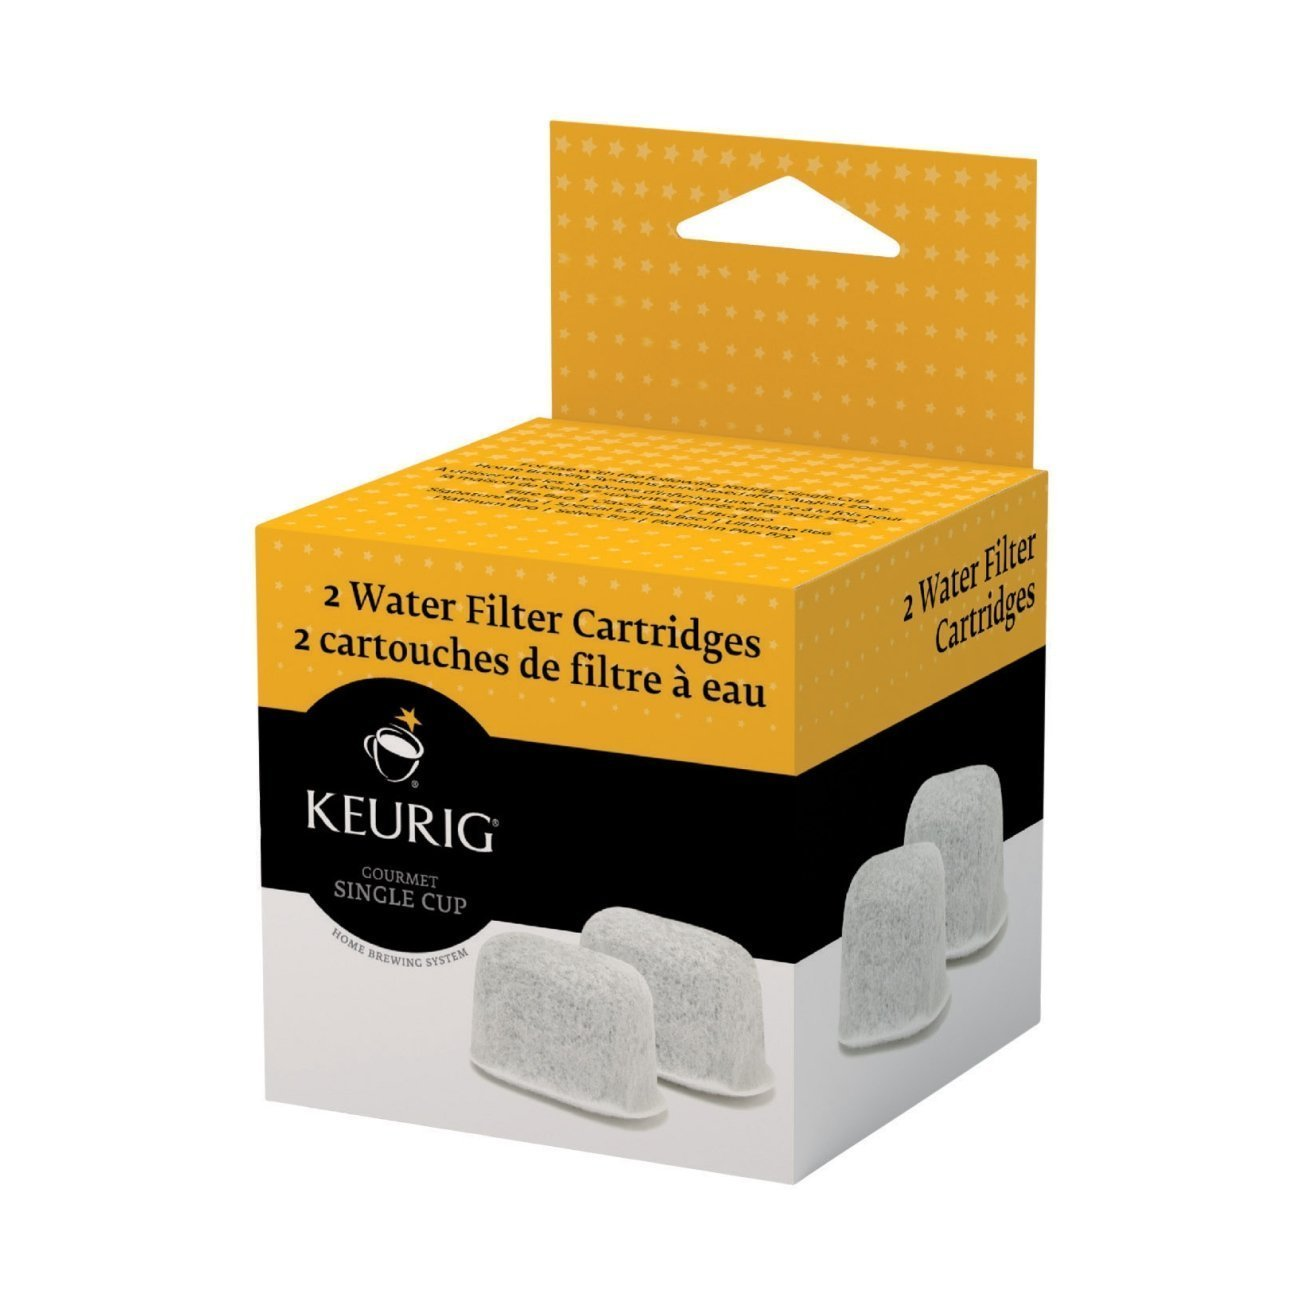 How To Replace Keurig Water Filter B40